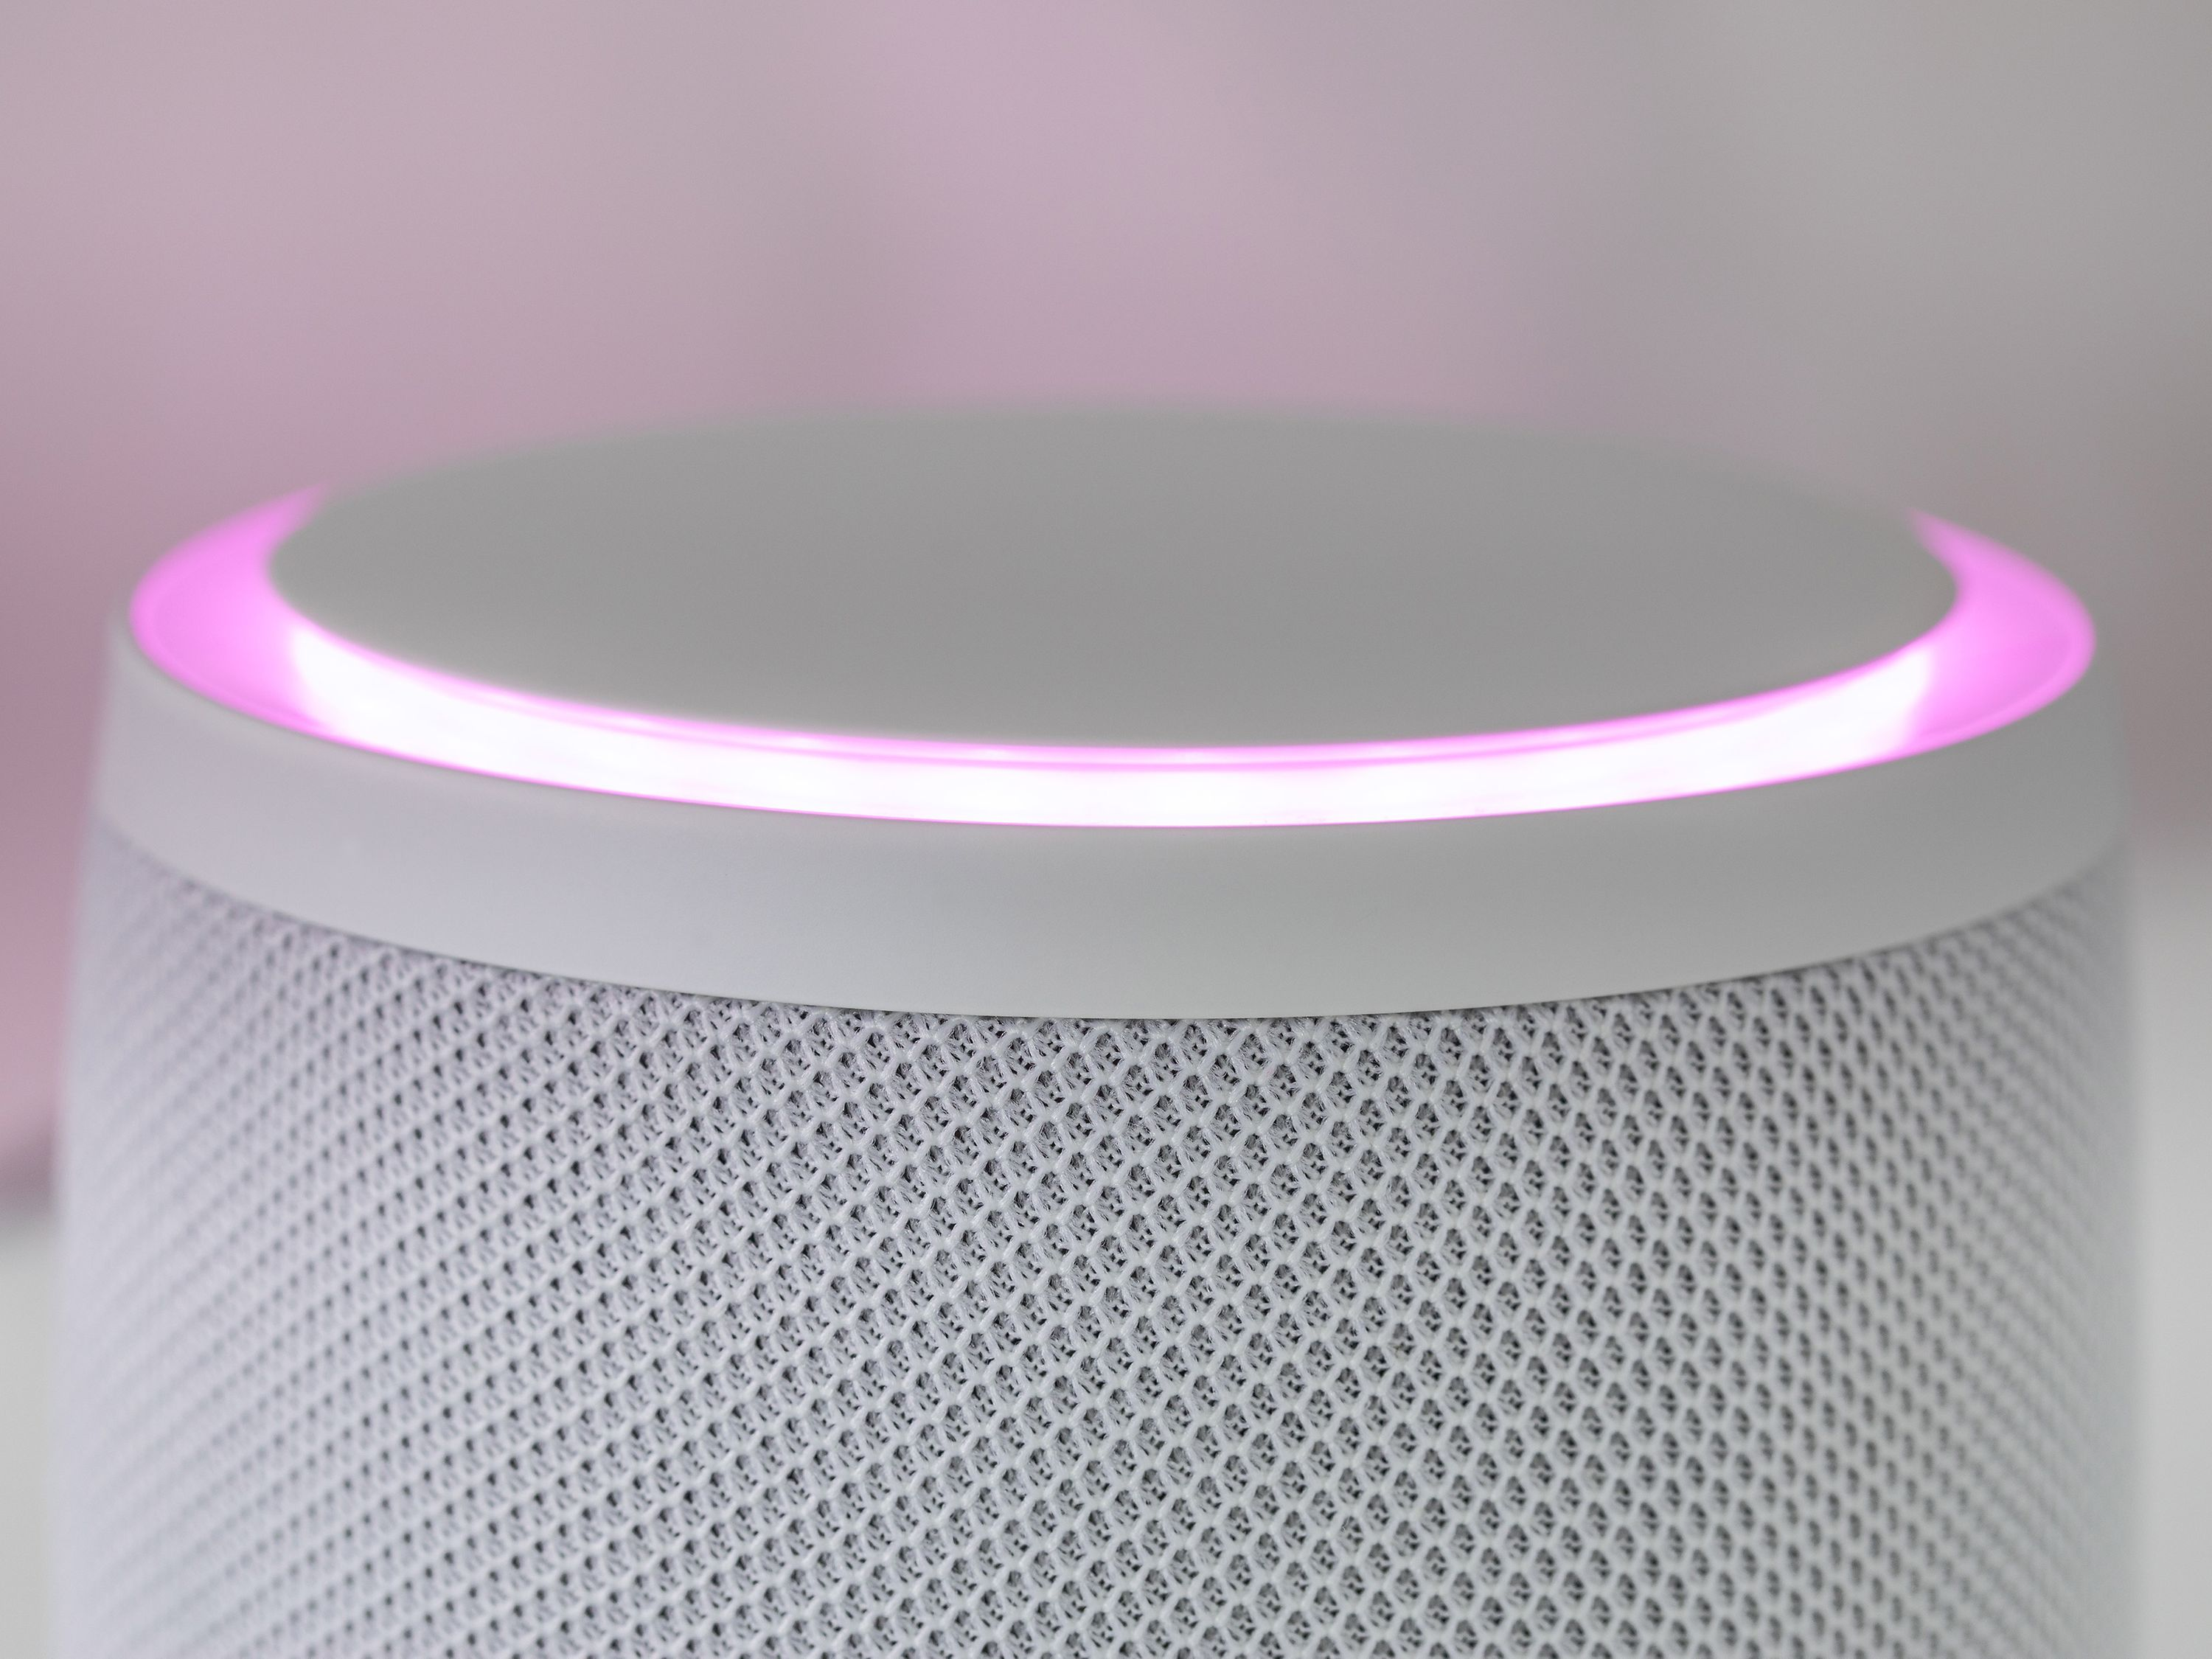 Deutsche Telekom´s Smart Speaker